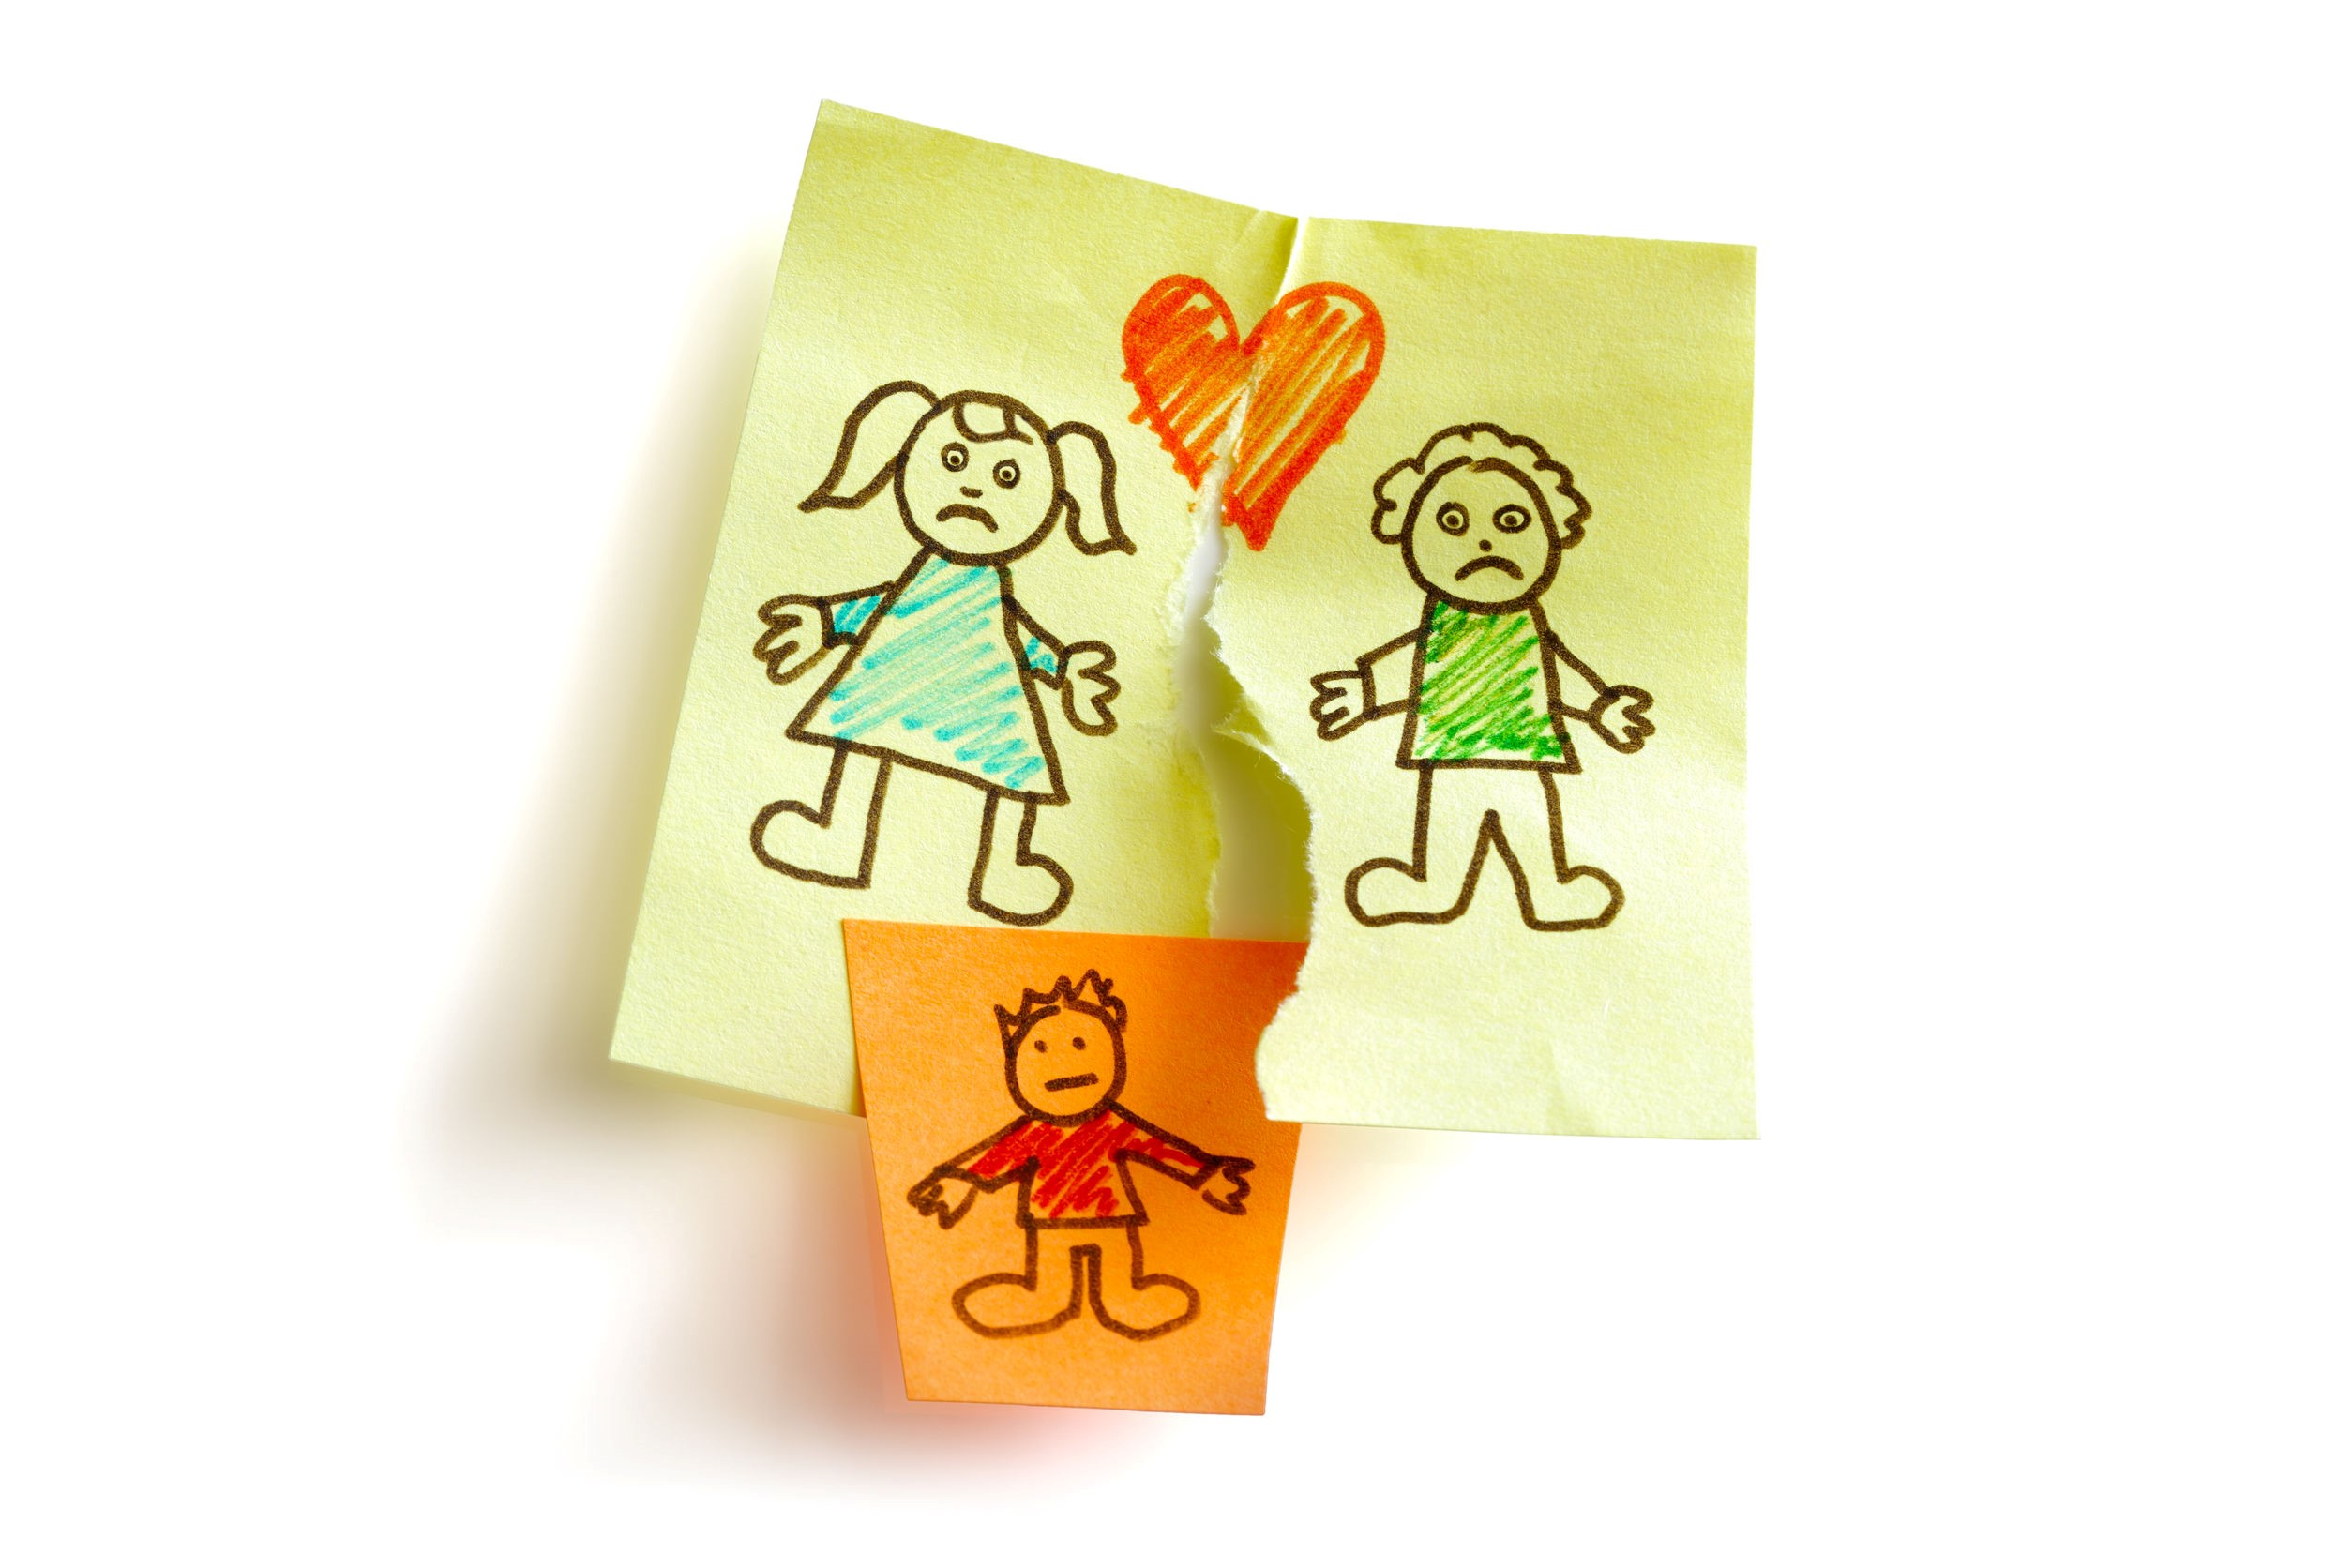 Florida Child Custody - No, You Can't Just Take Your Kid